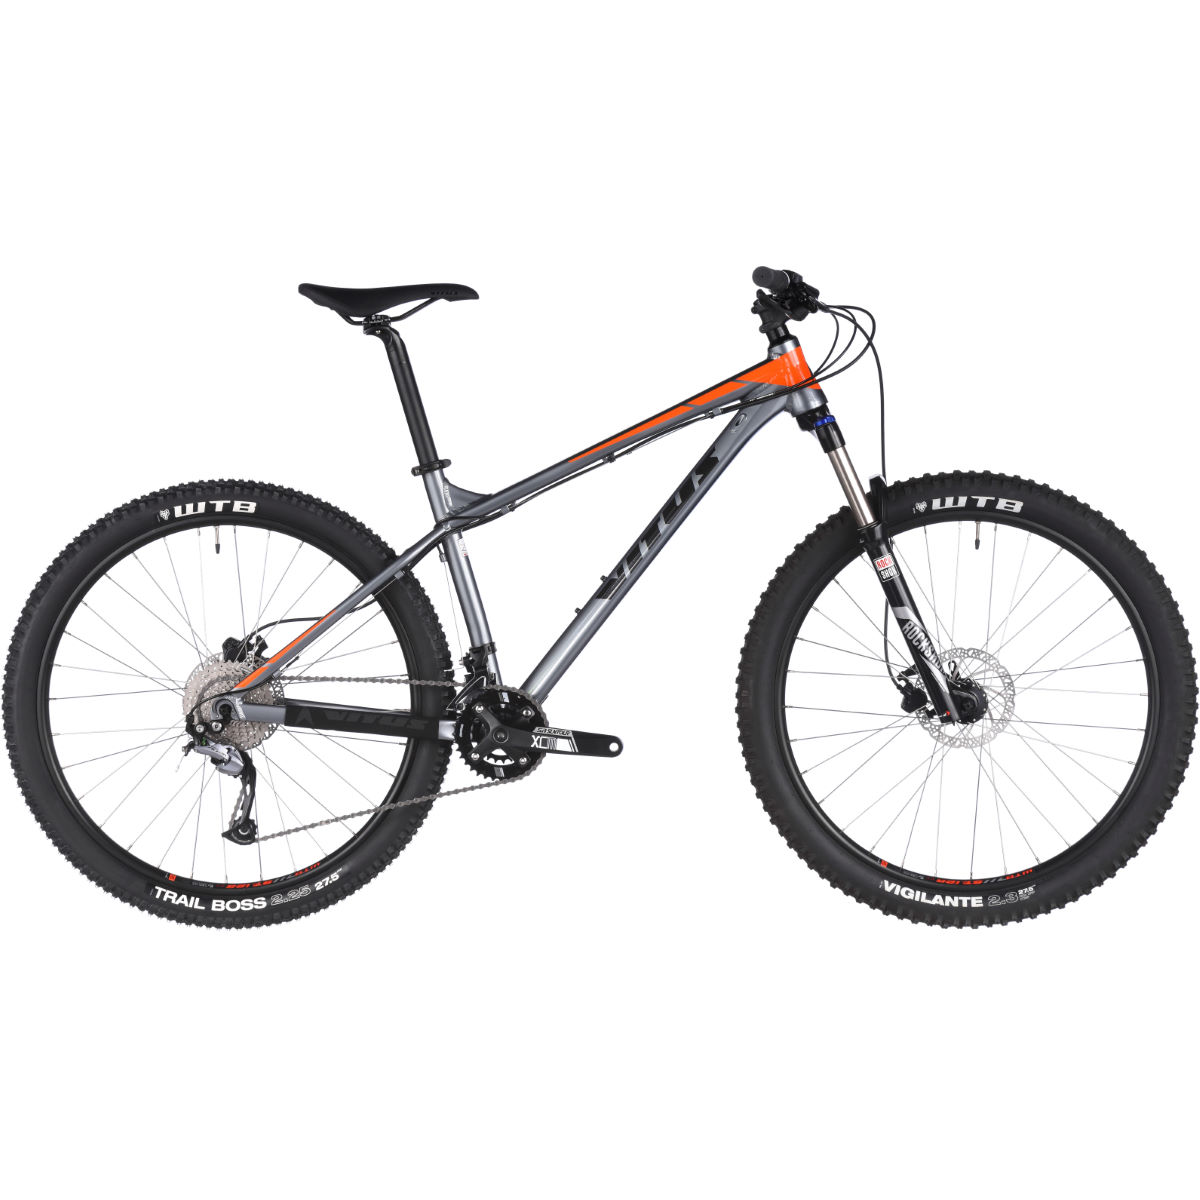 VTT semi-rigide Vitus Nucleus 275 VRS (Rockshox, 2018) - Gris/Orange